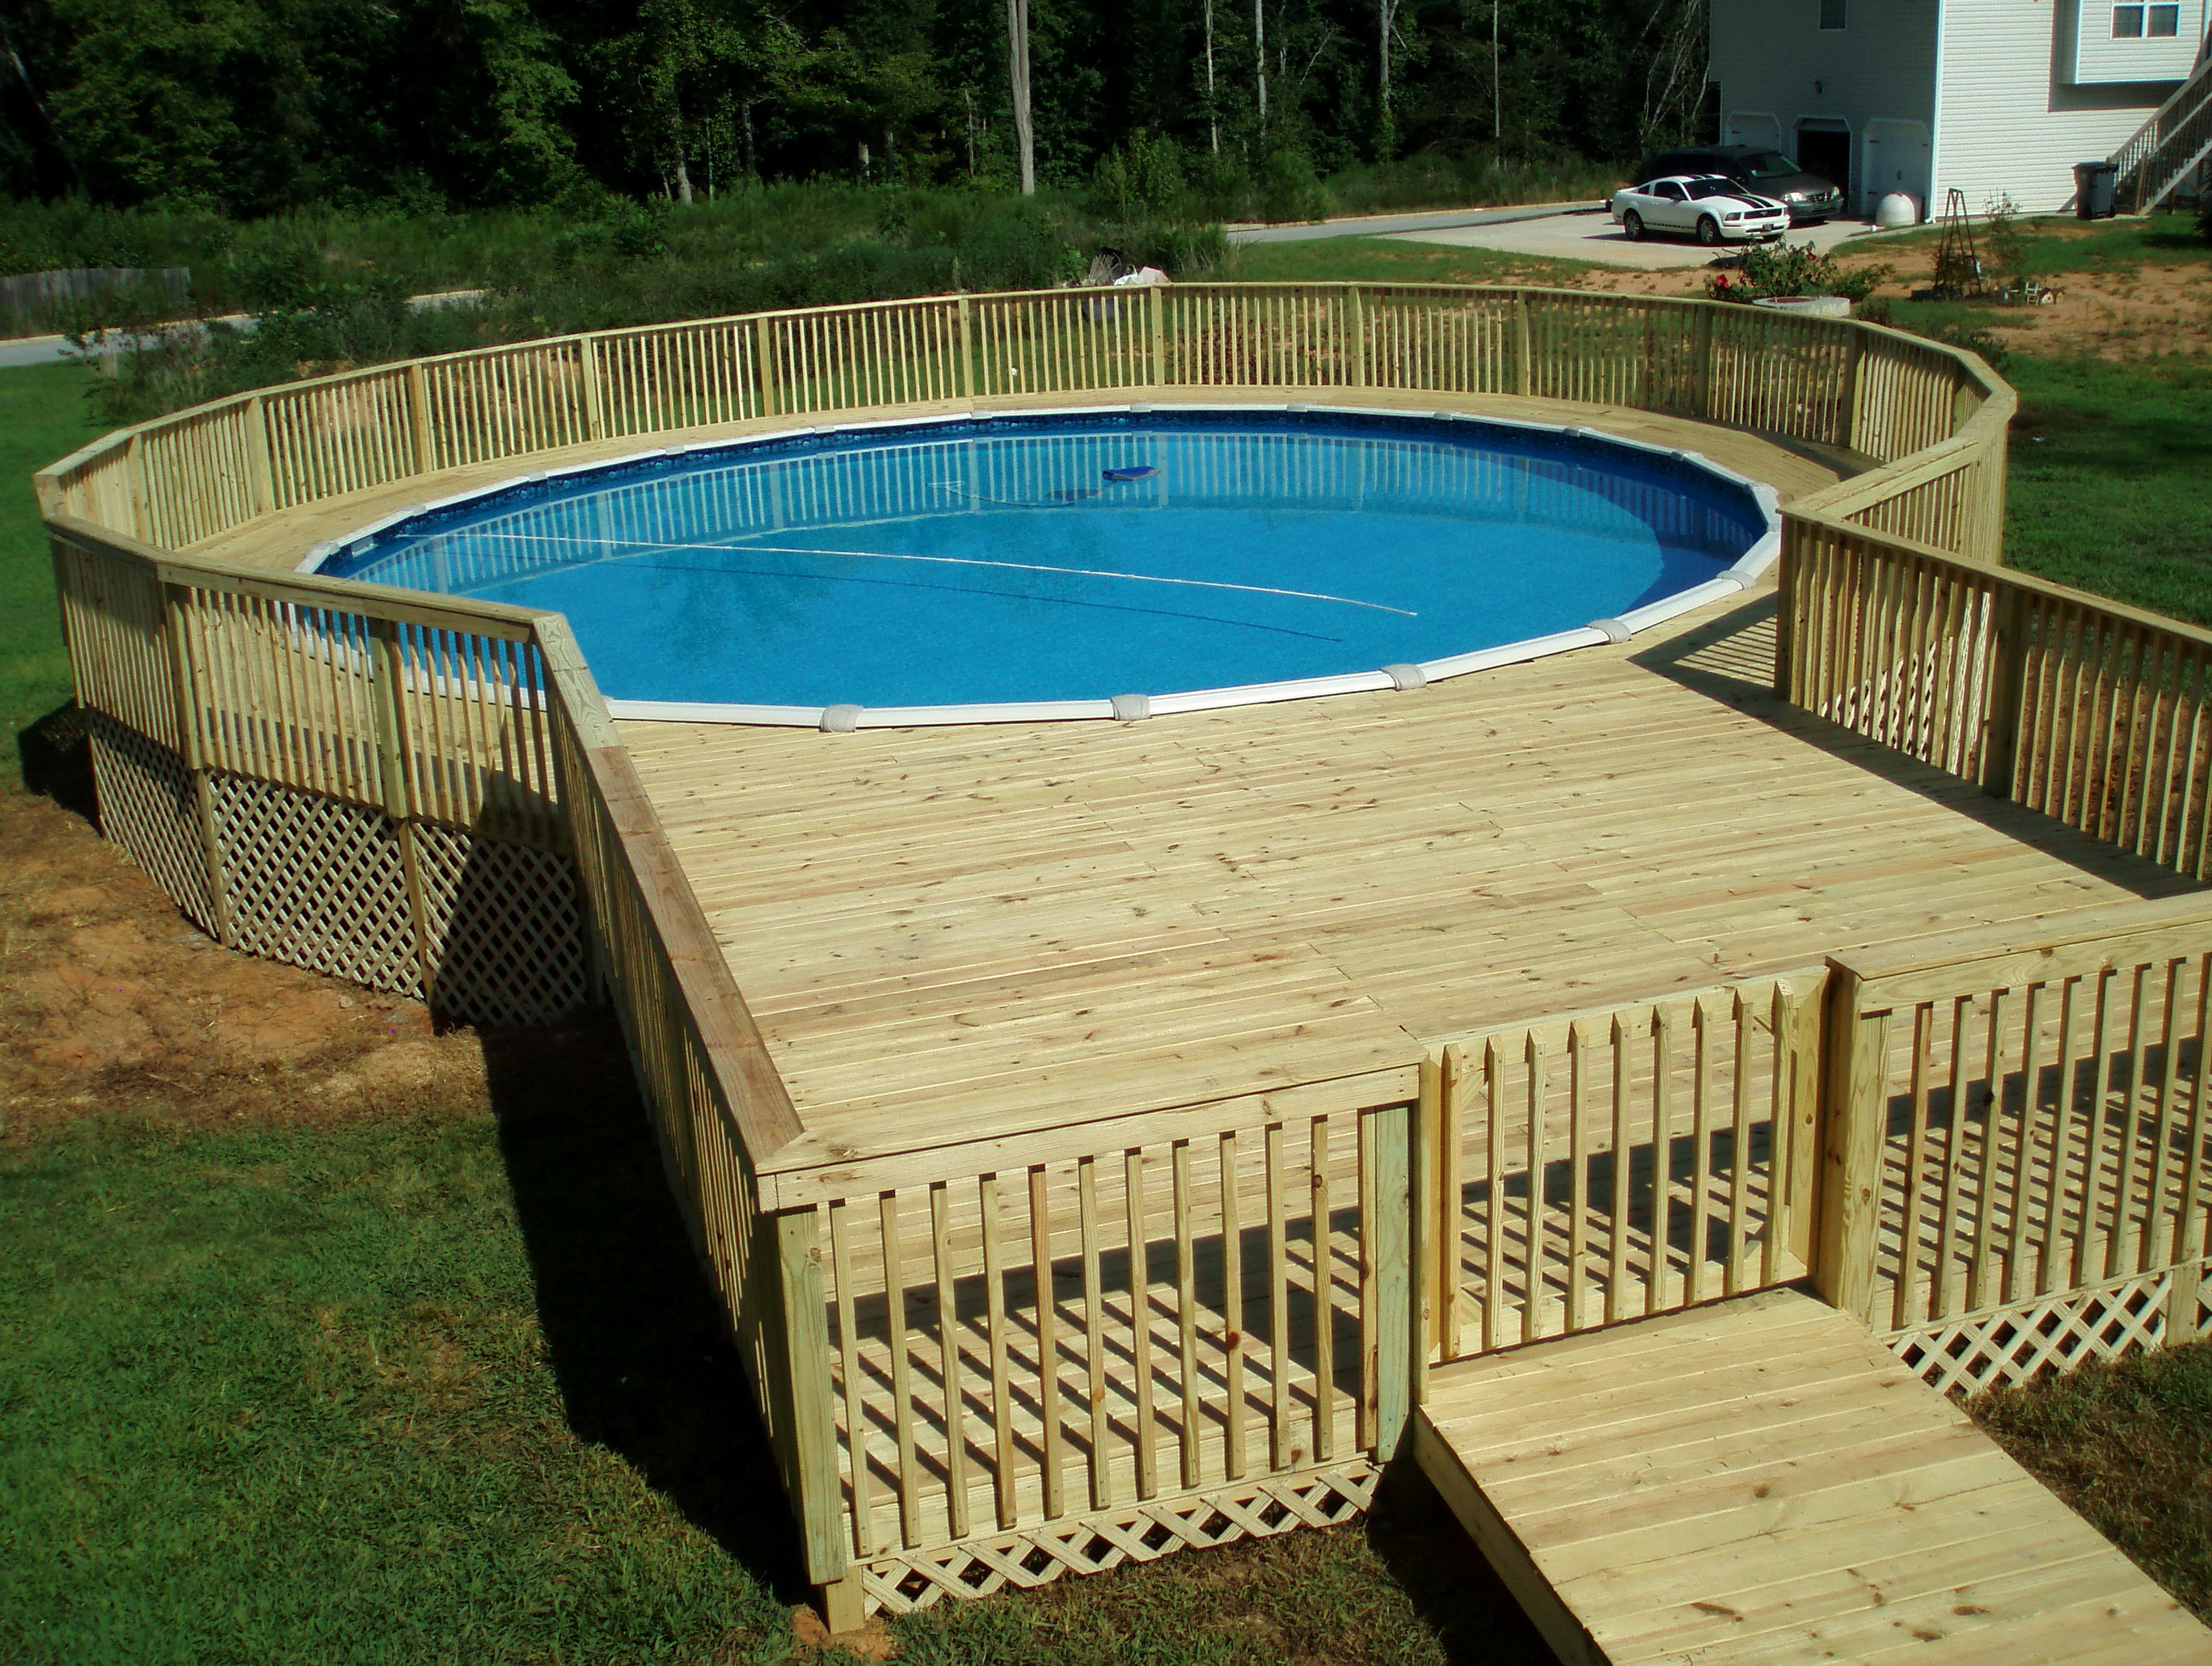 Above ground pool decks pictures home design ideas for Above ground pool decks images